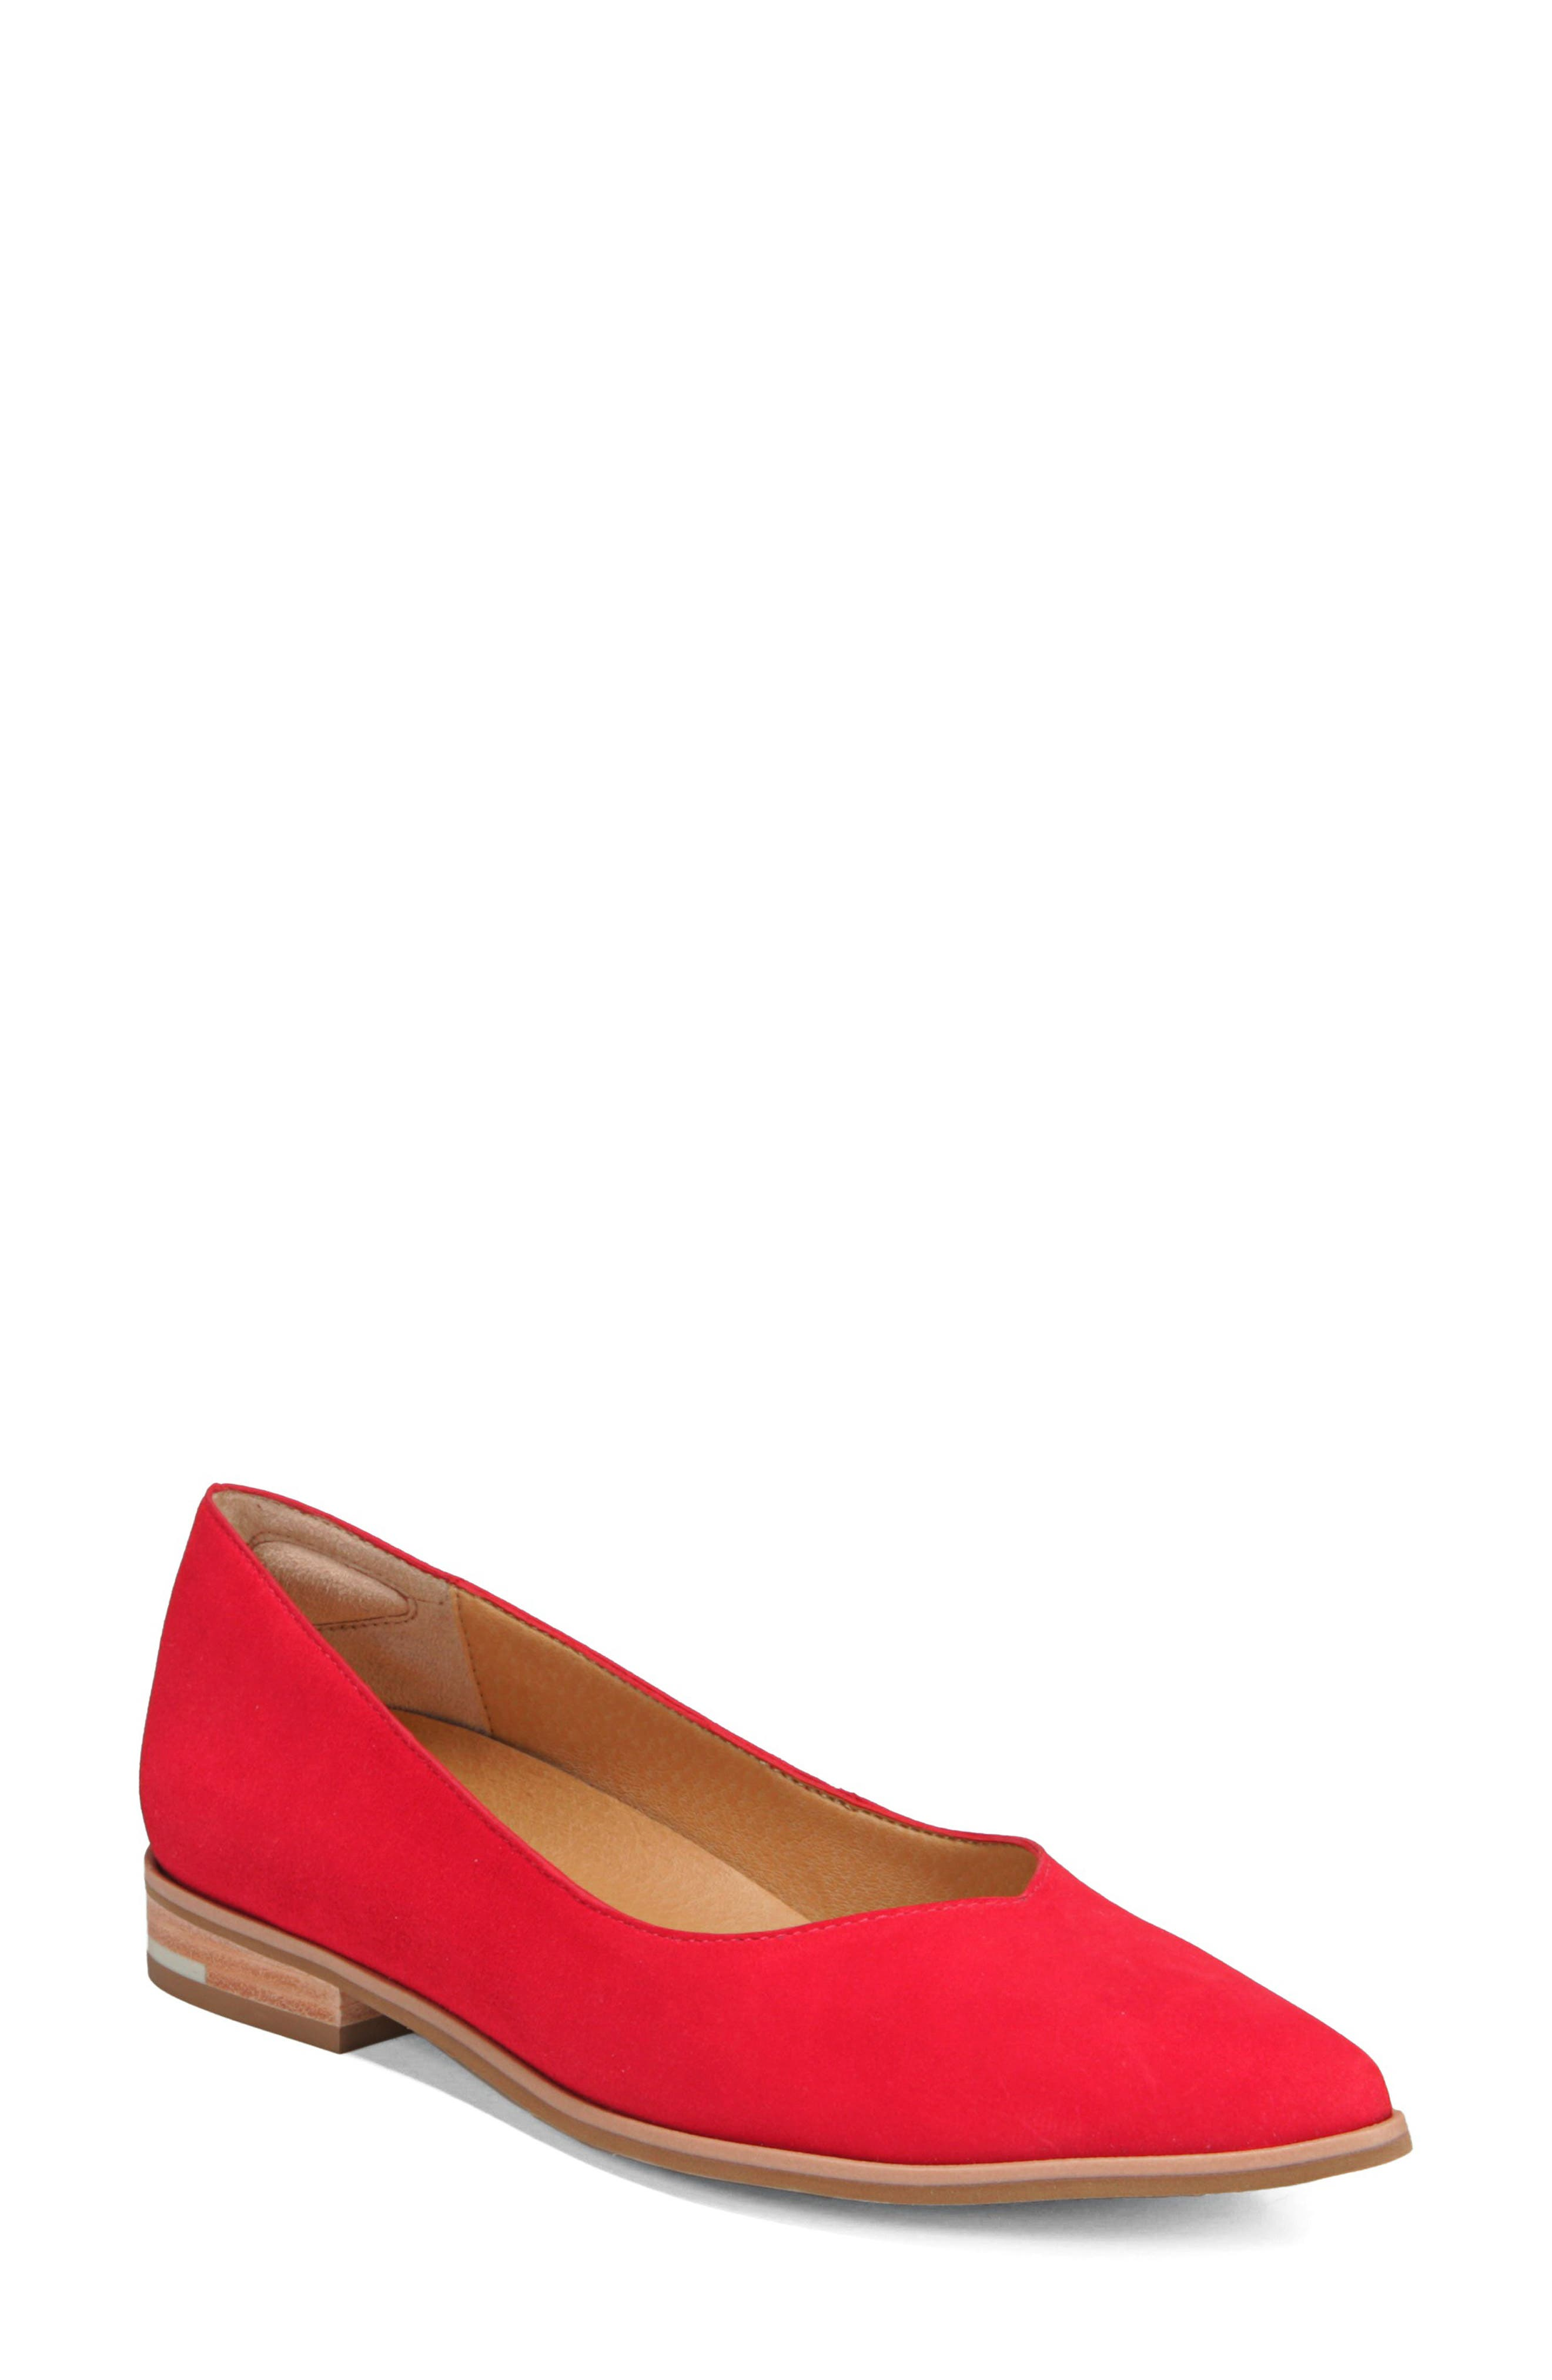 Dr. Scholls Flair Flat,                             Main thumbnail 1, color,                             RED LEATHER